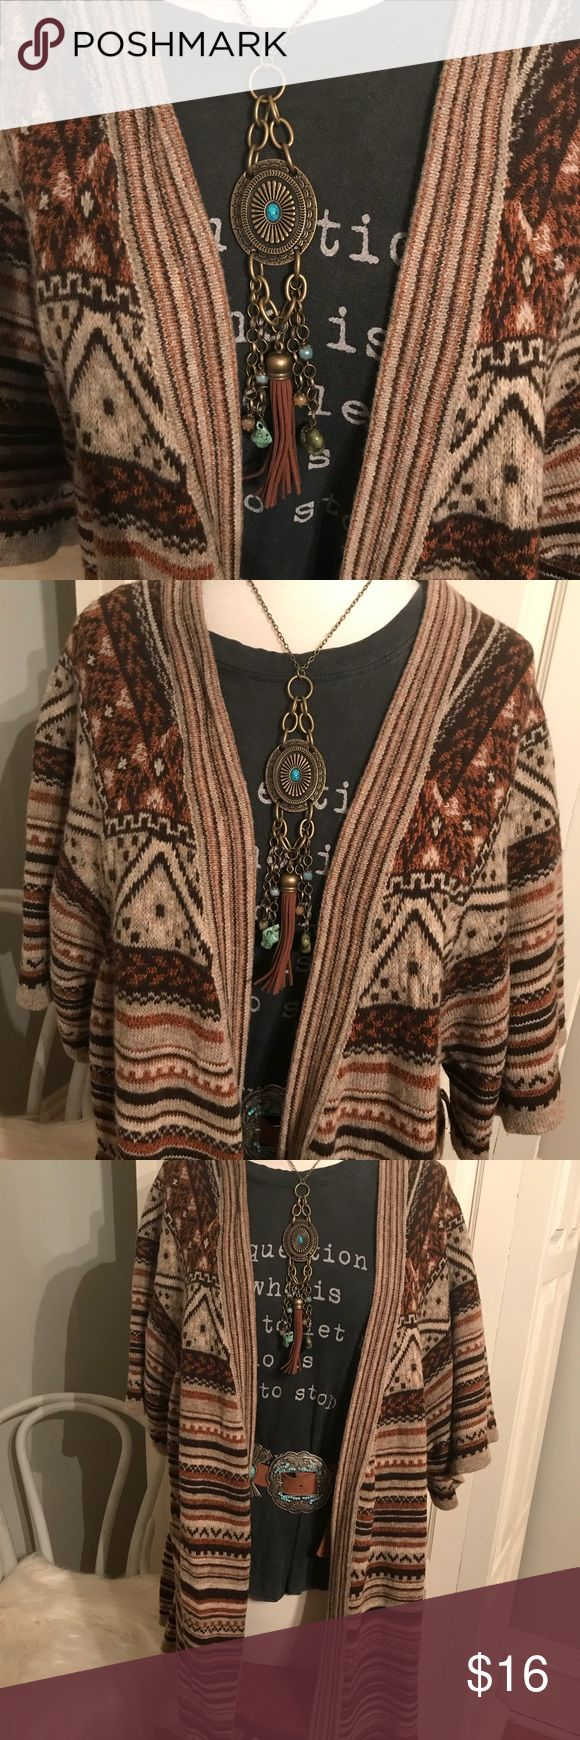 Apt. 9 Boho Tribal Sweater Cardigan. Beautiful short sleeved tribal Sweater vest. In earth tones if brown, cream, rust tribal print. No belt included. Very soft! Size Medium Apt.9 Sweaters Shrugs & Ponchos